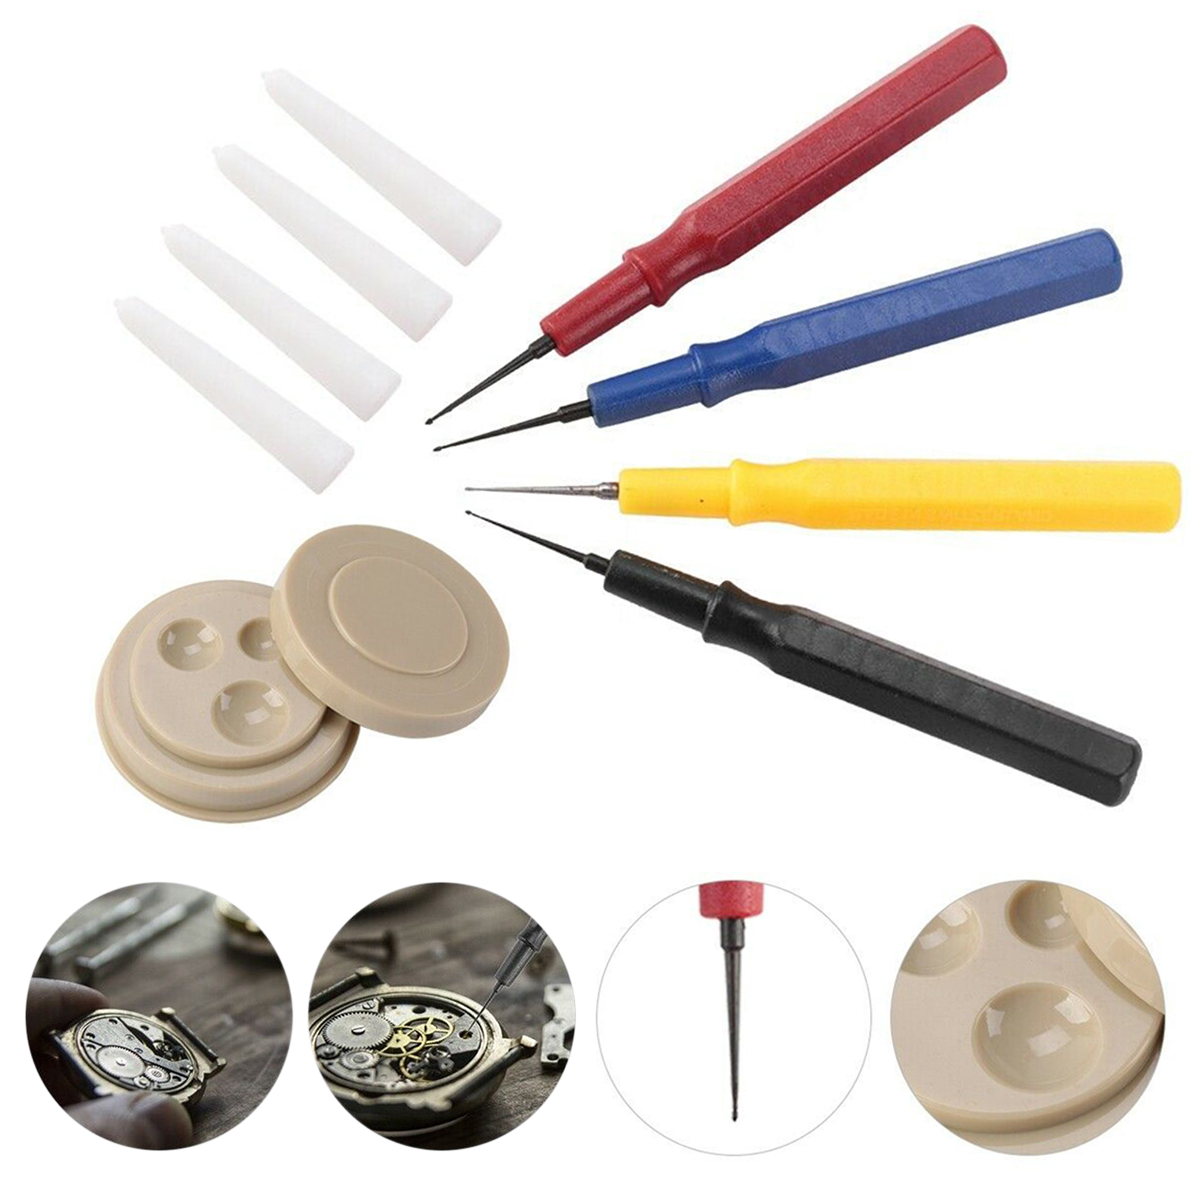 Professional Watch Oiler Kit Watchmaker Repair Tool Watch Oiler Set 1 Oil Cup 4 Oil Pen Assortment Watch Tool Kit